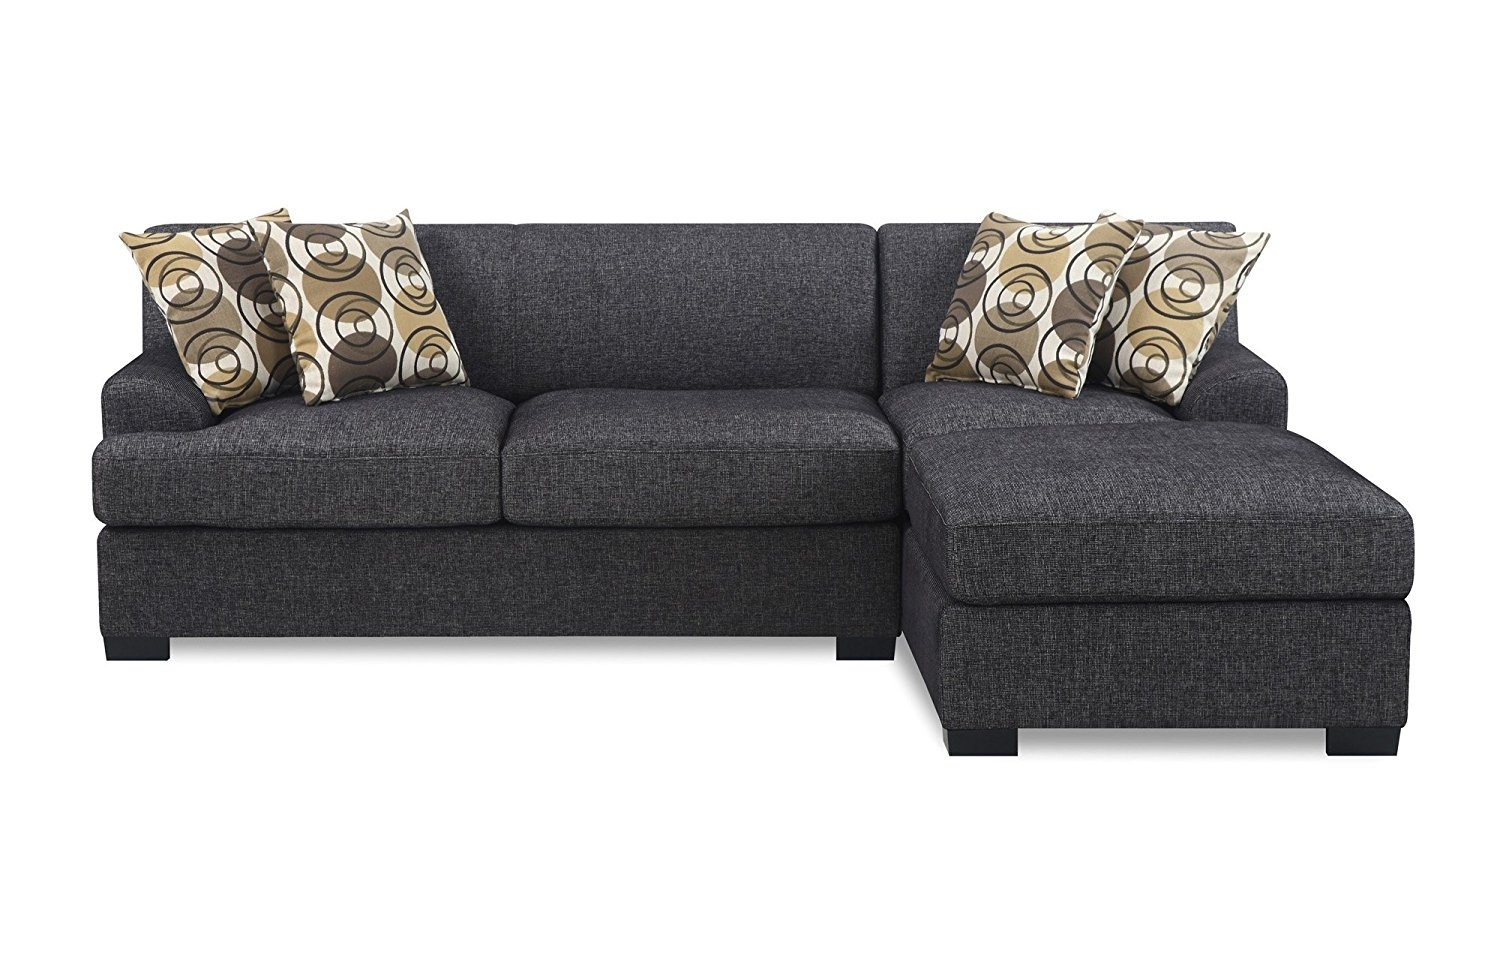 Bobkona Benford Piece Chaise Loveseat Sectional Sofa Couch With With Delano 2 Piece Sectionals With Raf Oversized Chaise (Image 6 of 25)